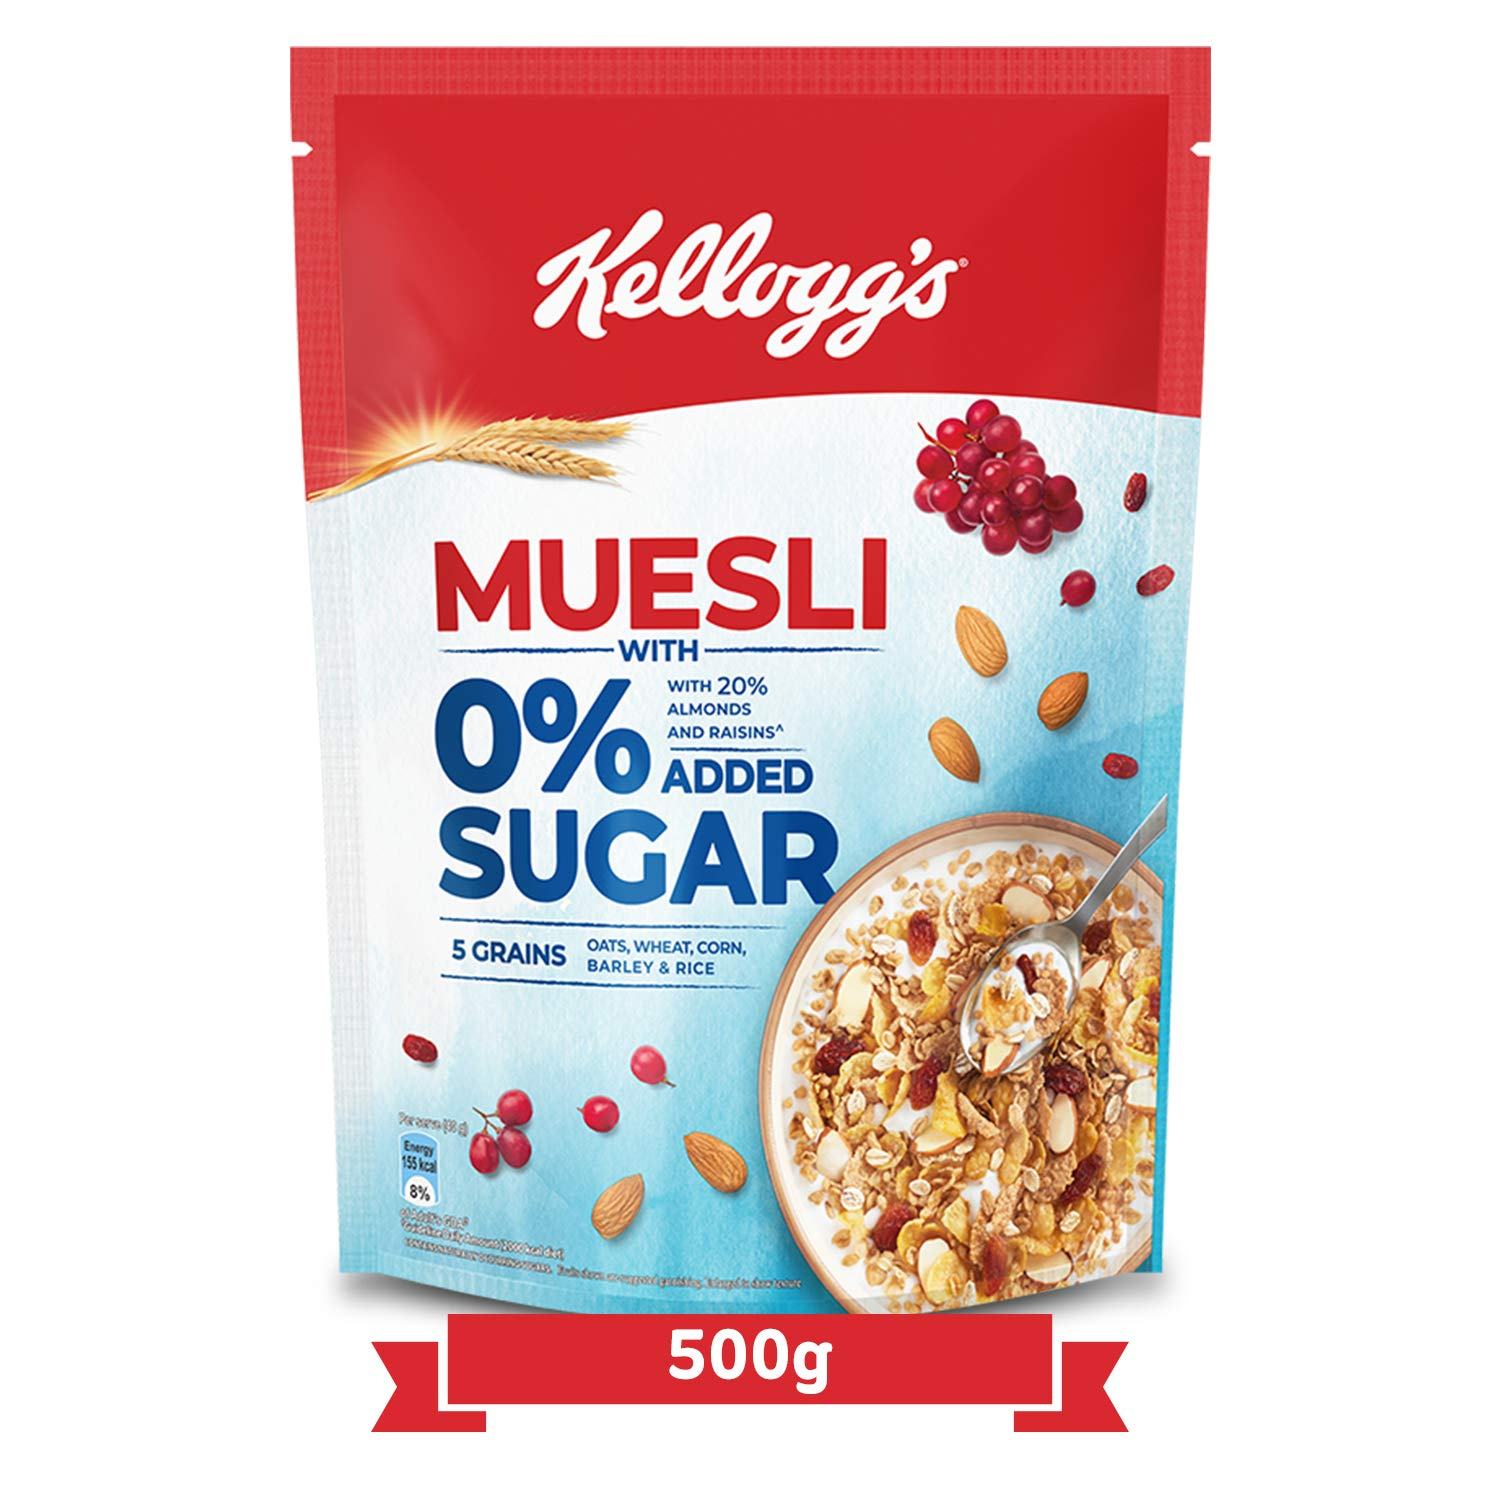 Kellogg's Muesli with 0% Added Sugar Pouch.